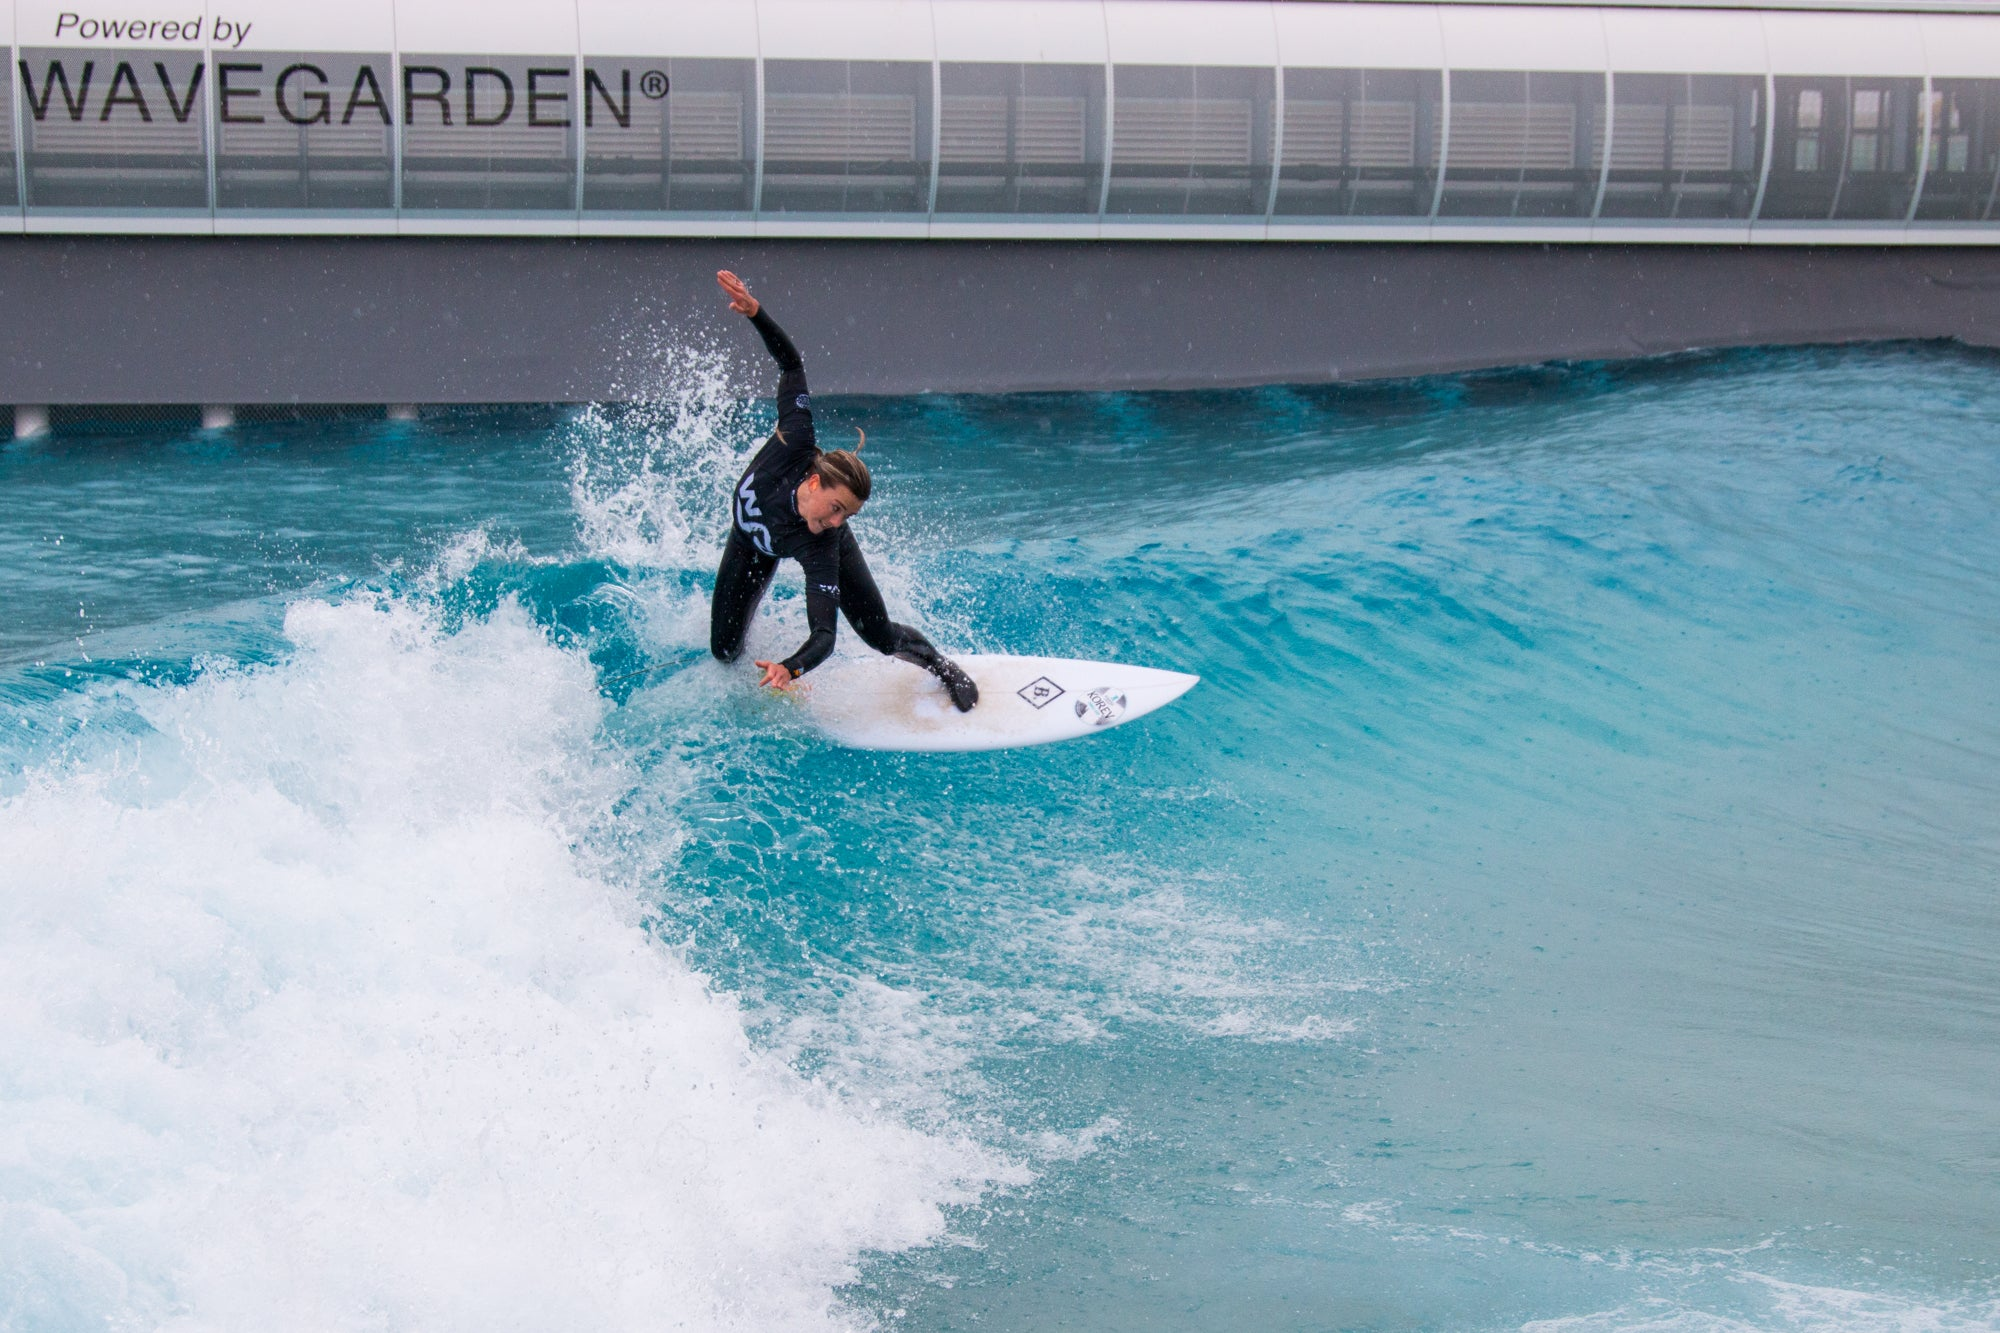 Lucy Campbell surfing at The Wave in Bristol